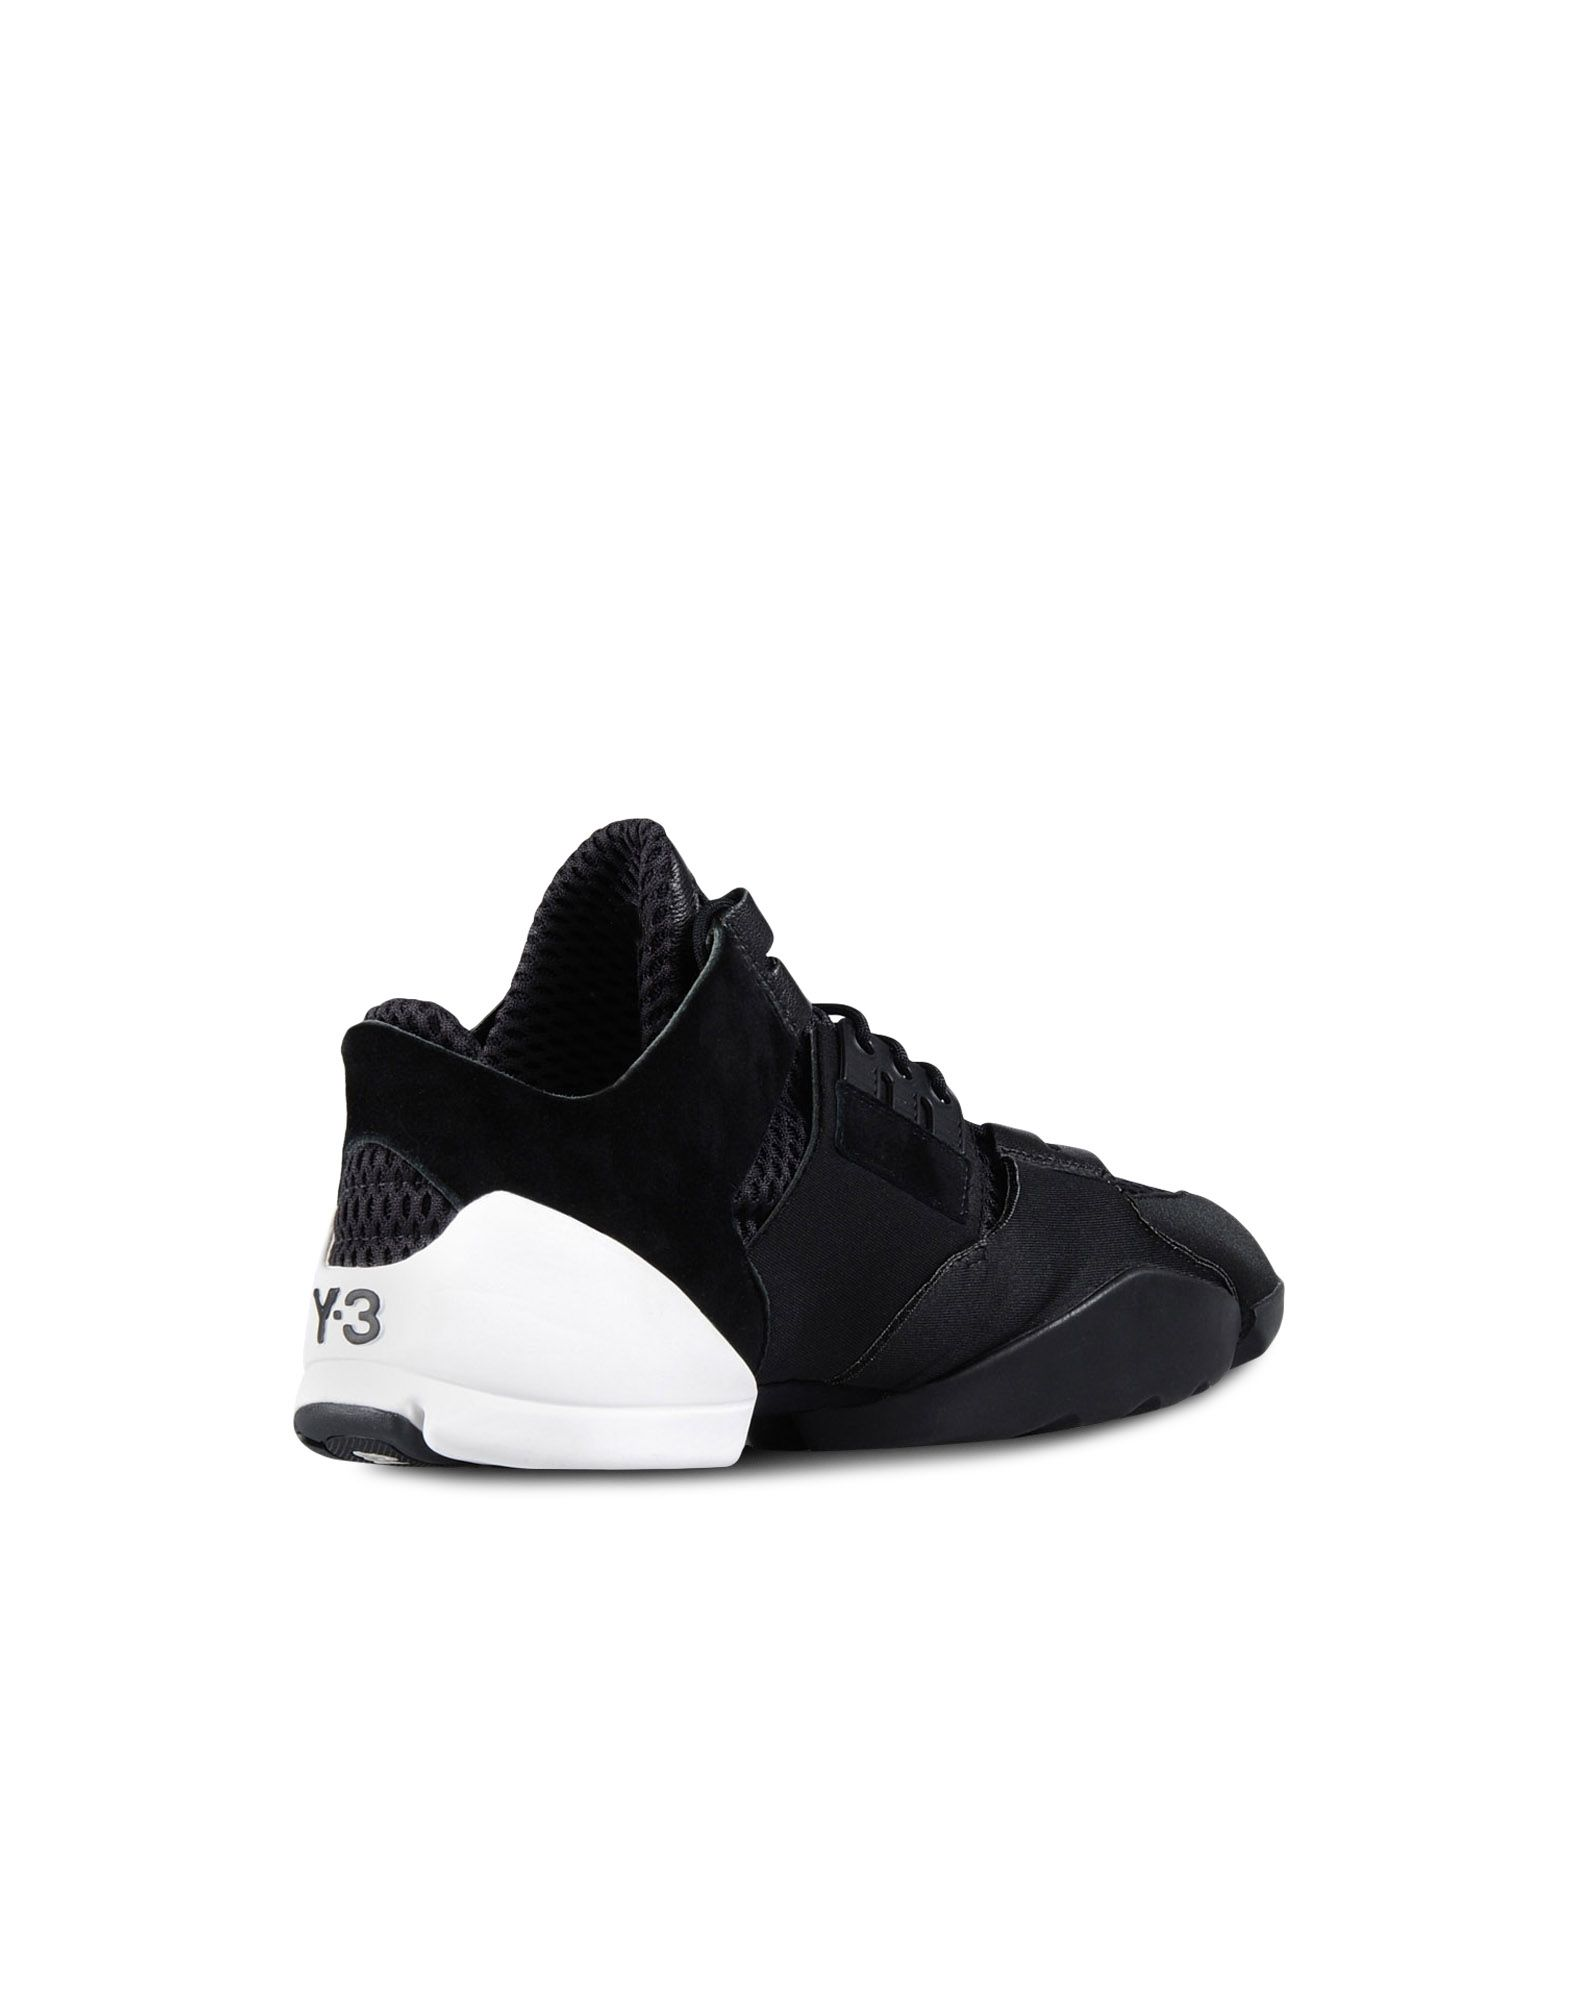 Y-3 KANJA SHOES woman Y-3 adidas